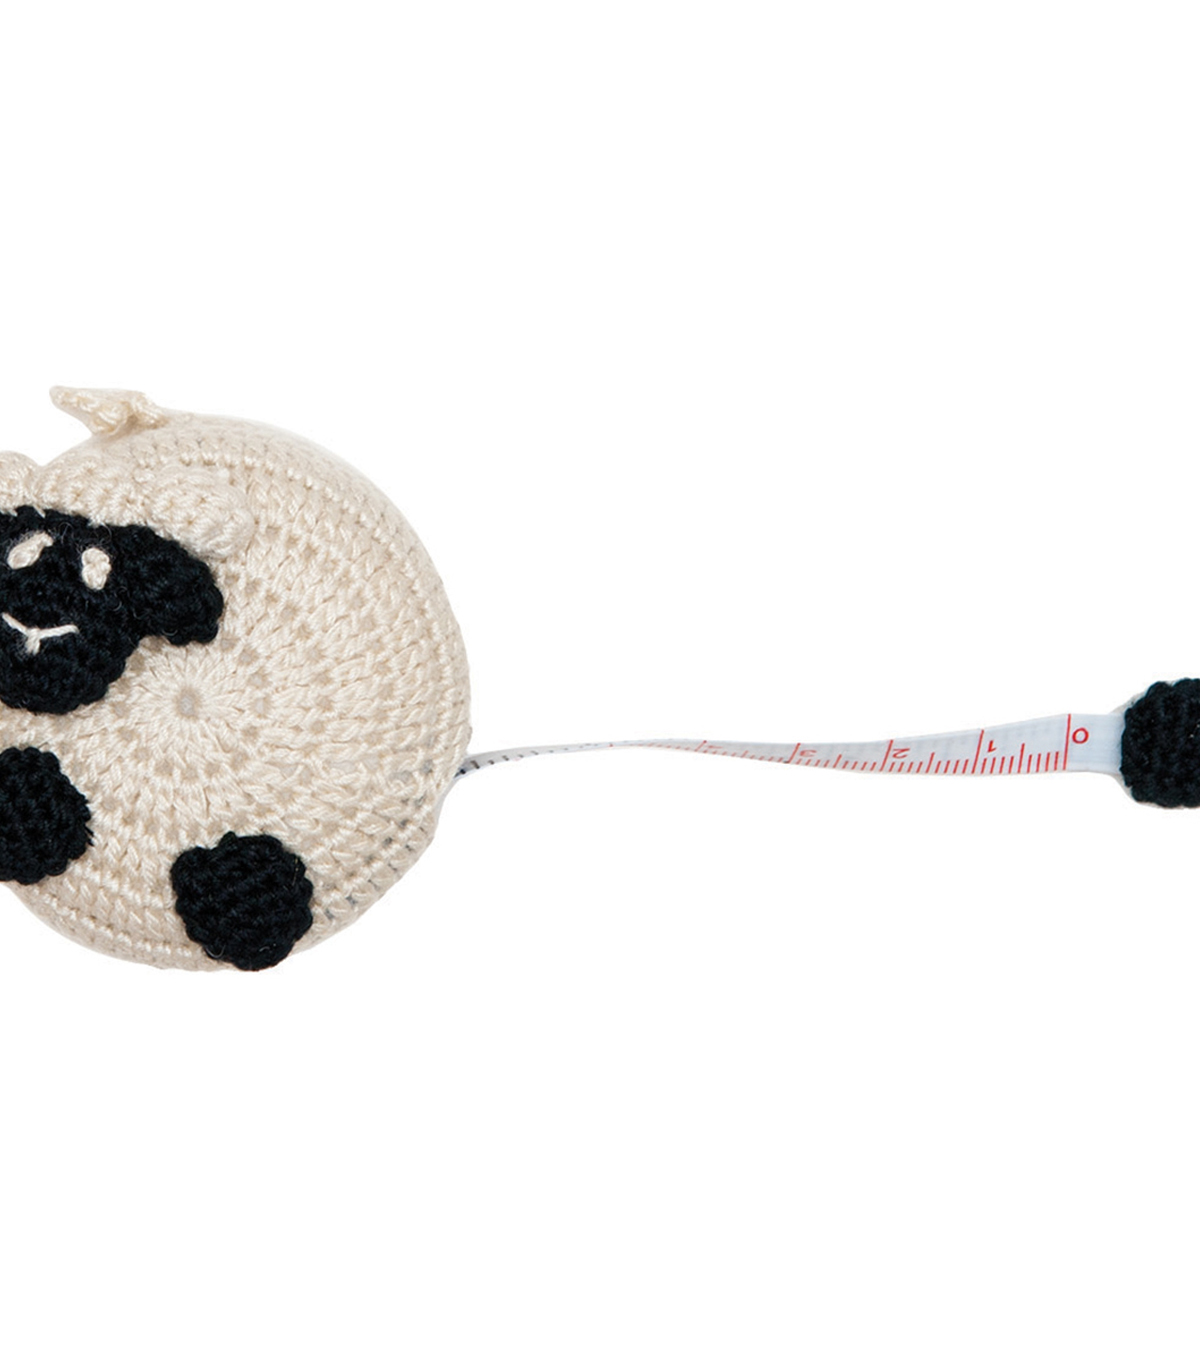 Paradise Exotic Crocheted Sheep Tape Measure